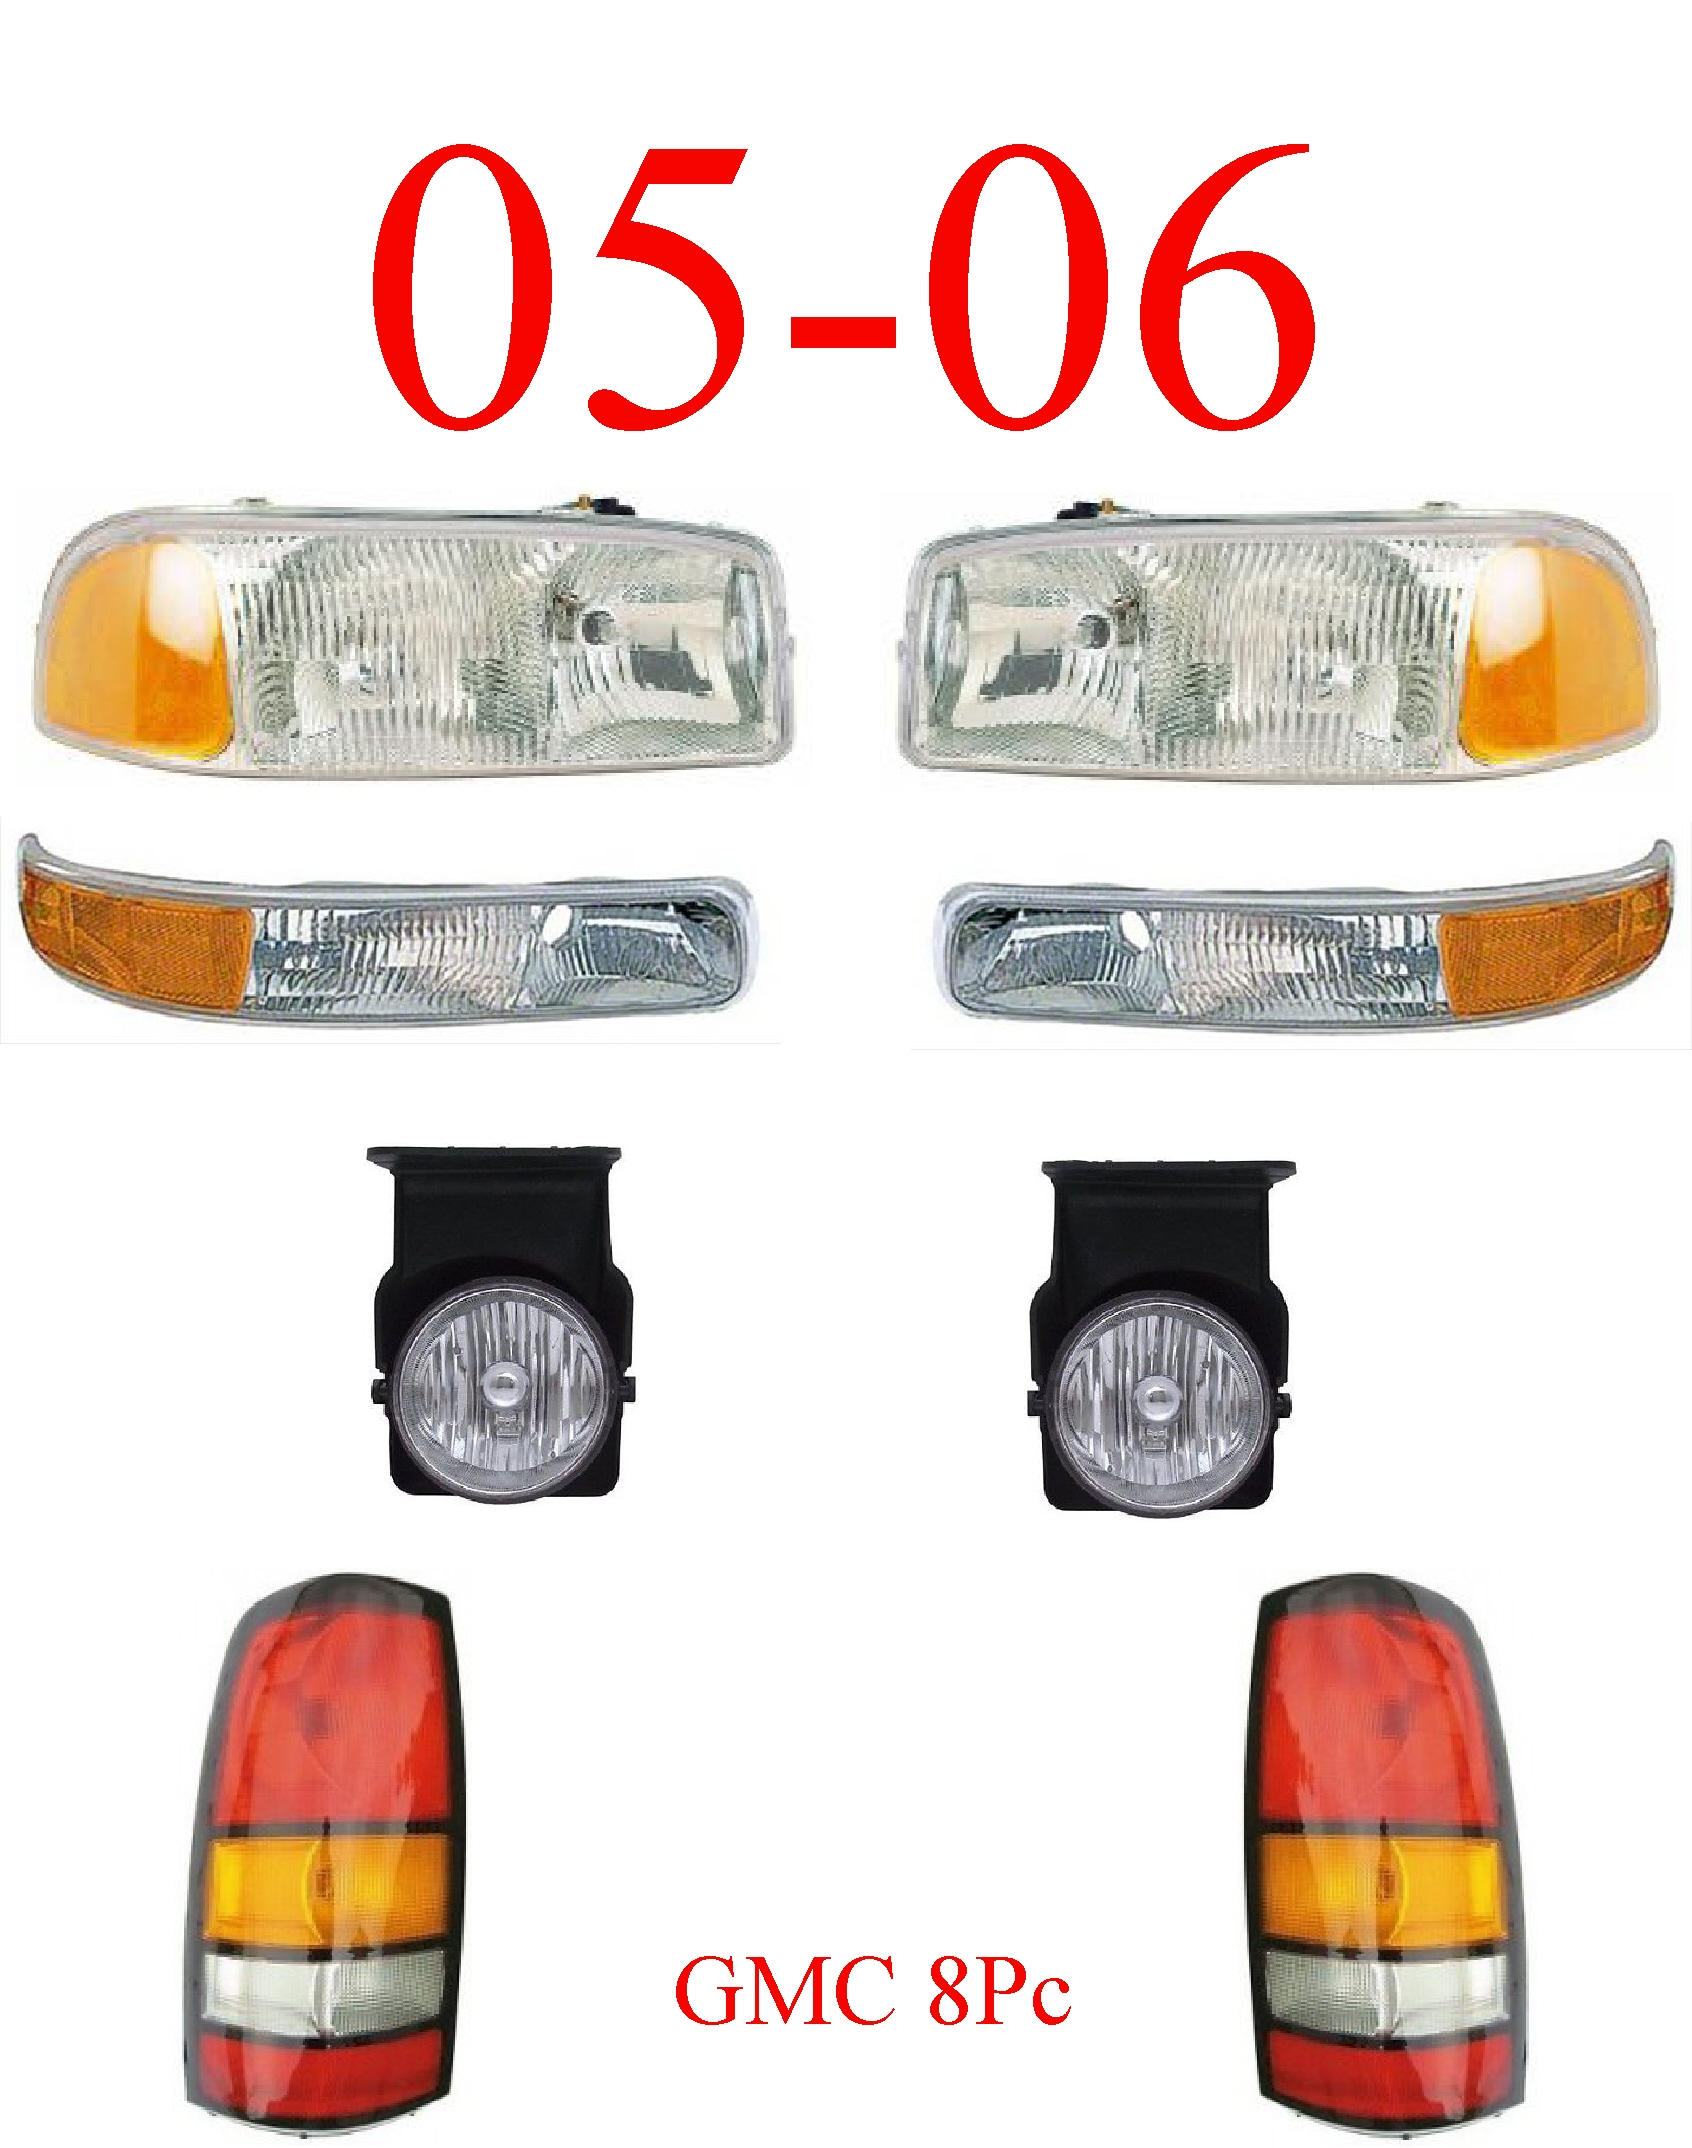 05-06 GMC Truck 8Pc Head, Park, Fog & Tail Light